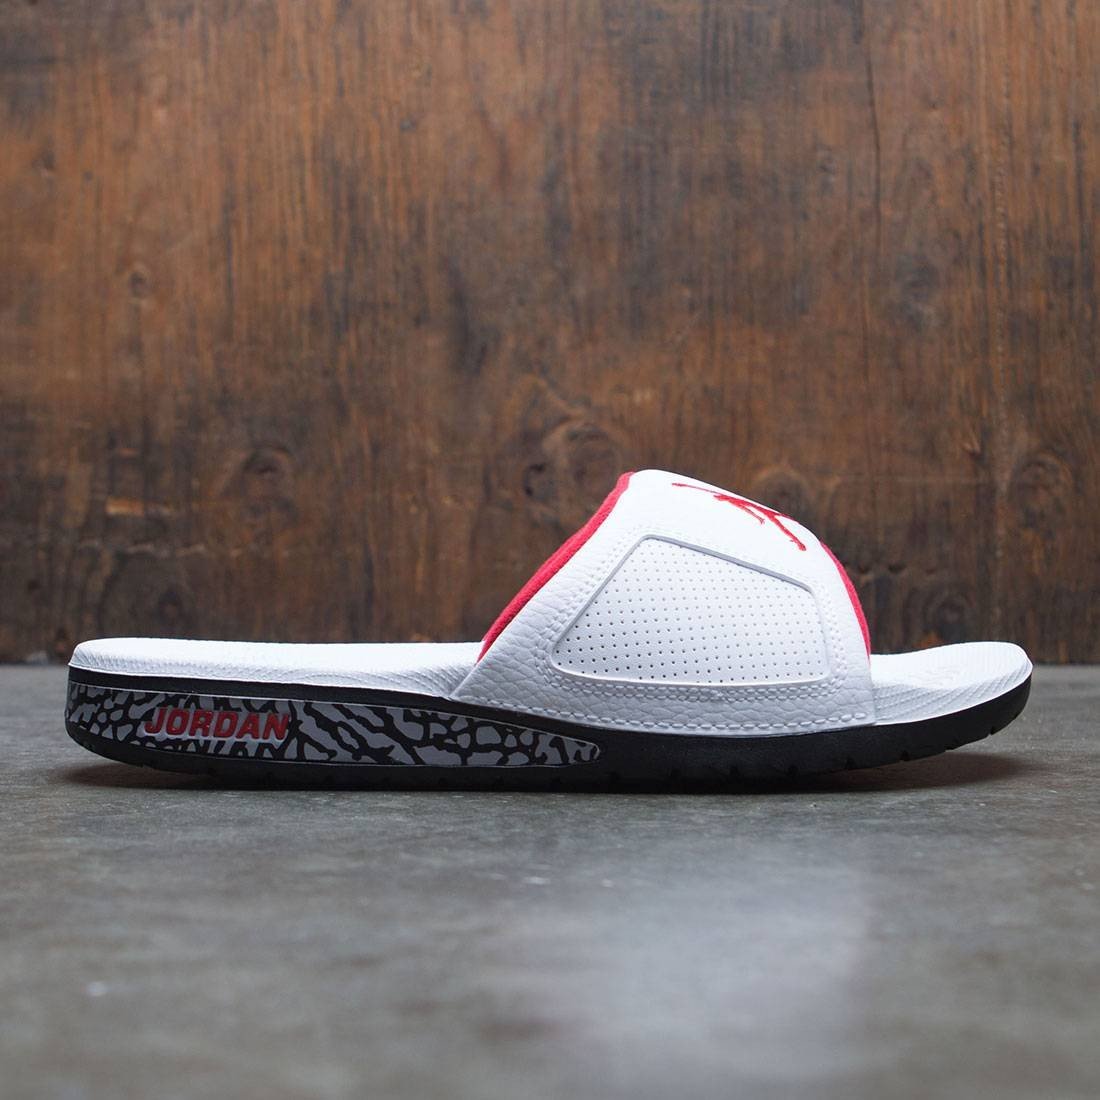 cd452cef5051bb jordan men jordan hydro iii retro slide white university red black cement  grey